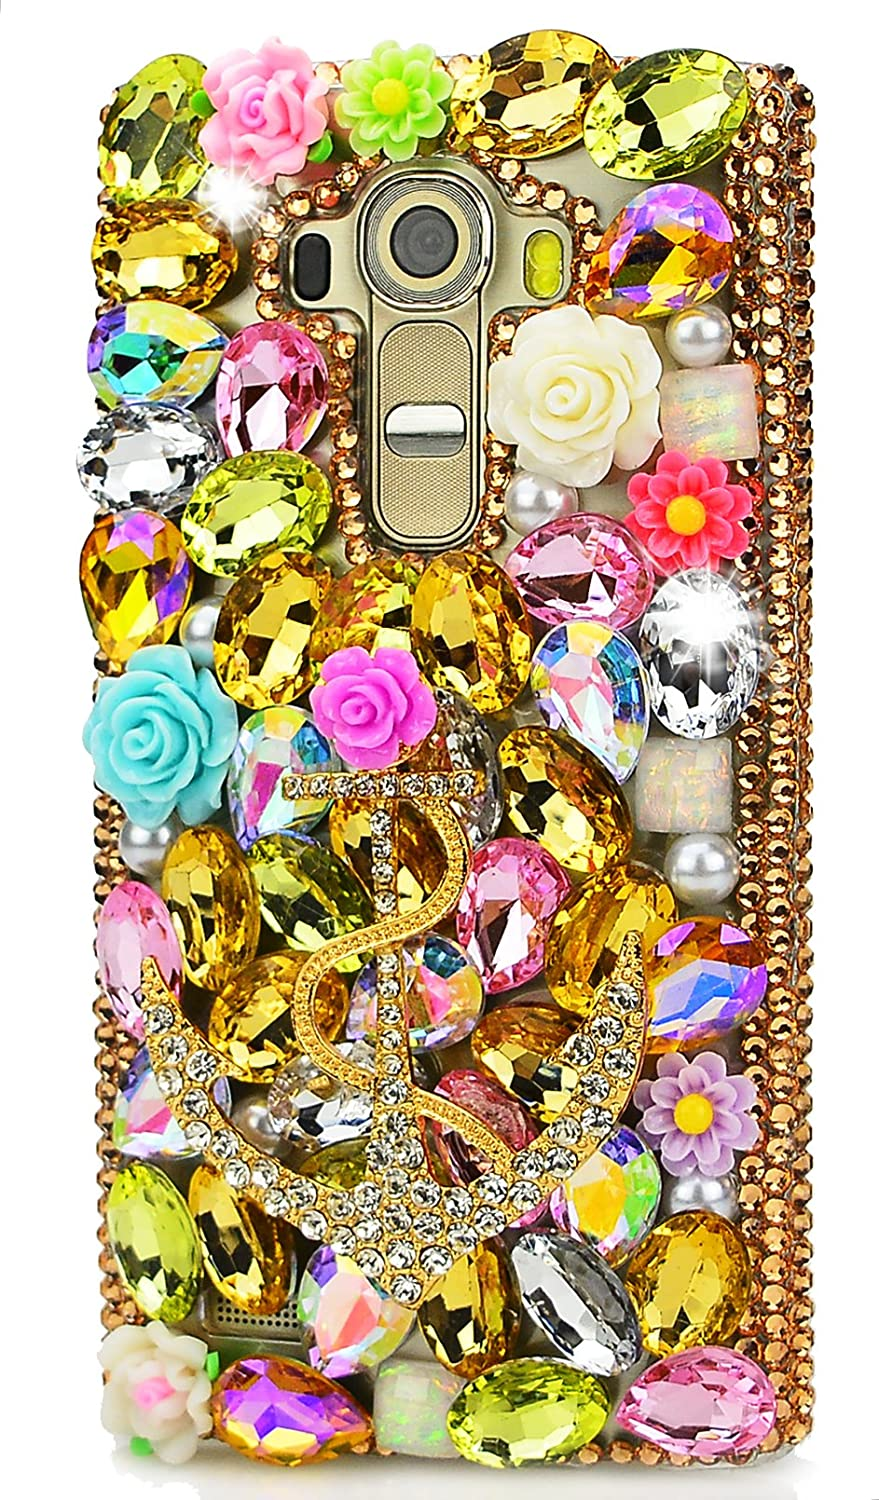 STENES LG K8 (2017) Case - 3D Handmade Luxurious Crystal Sparkle Diamond Rhinestone Clear Cover With Retro Bowknot Anti Dust Plug - Rose Flowers Big Anchors/Gold